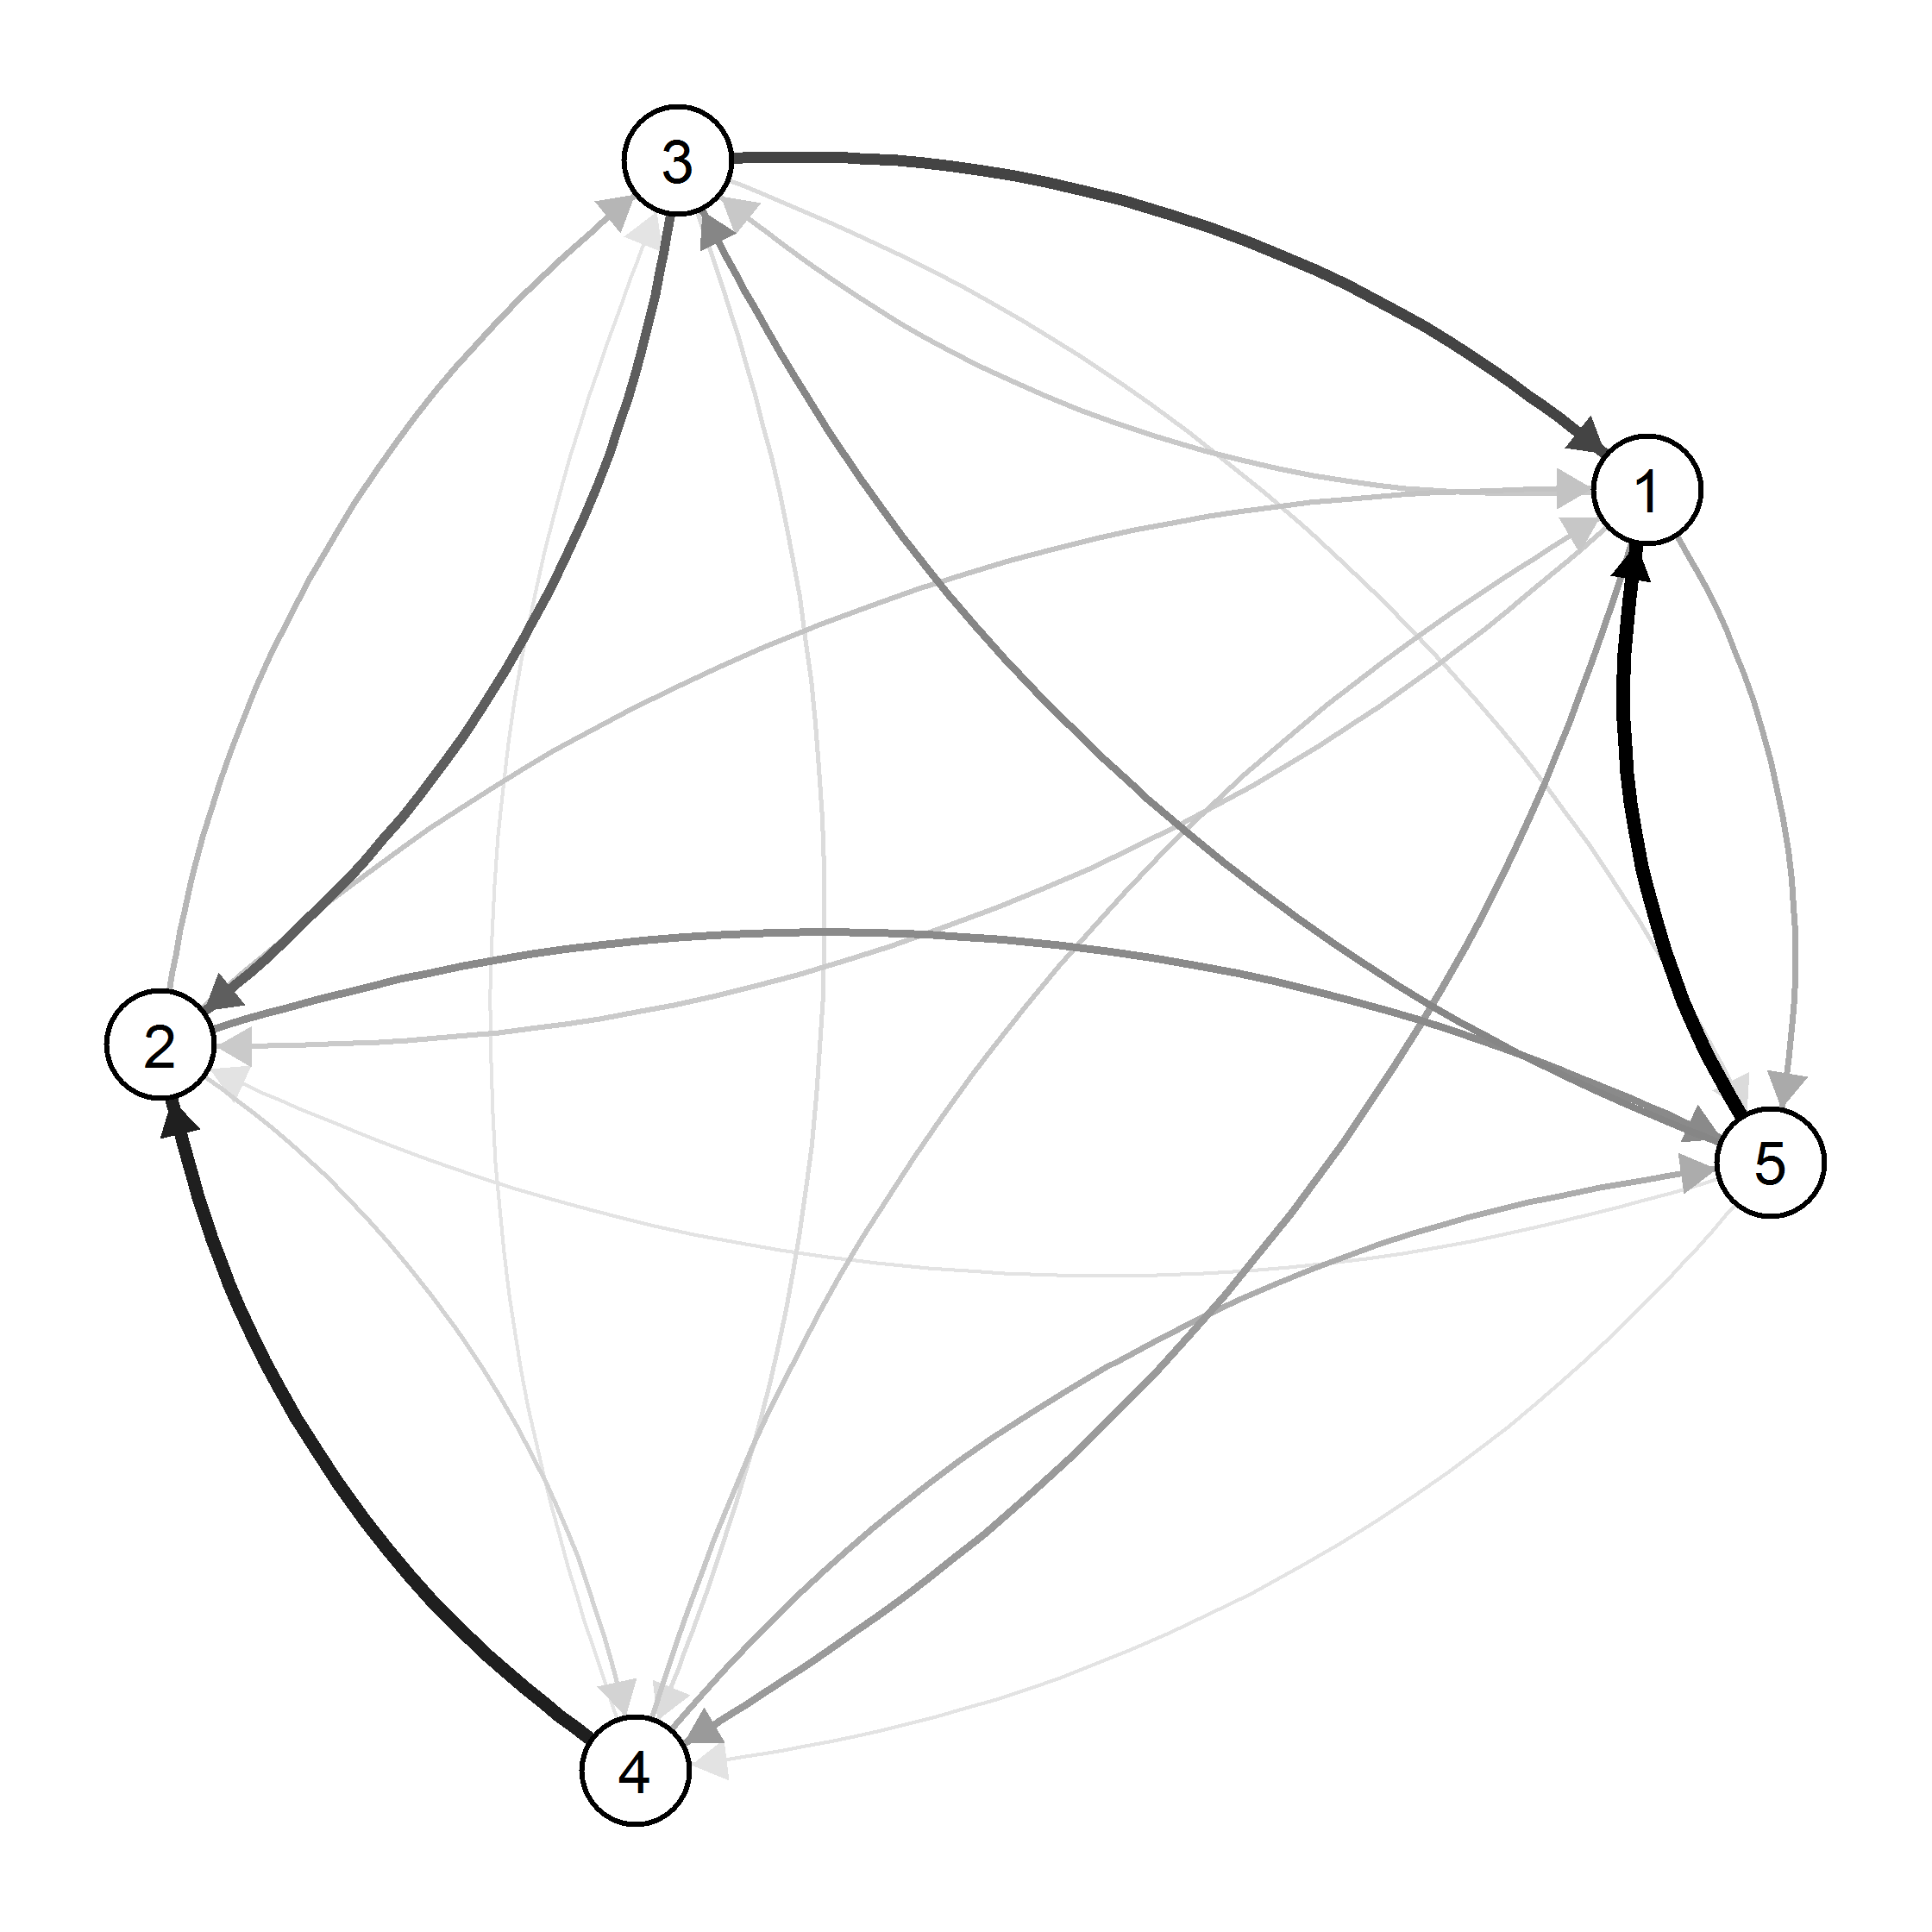 Draw Network in R (control edge thickness plus non